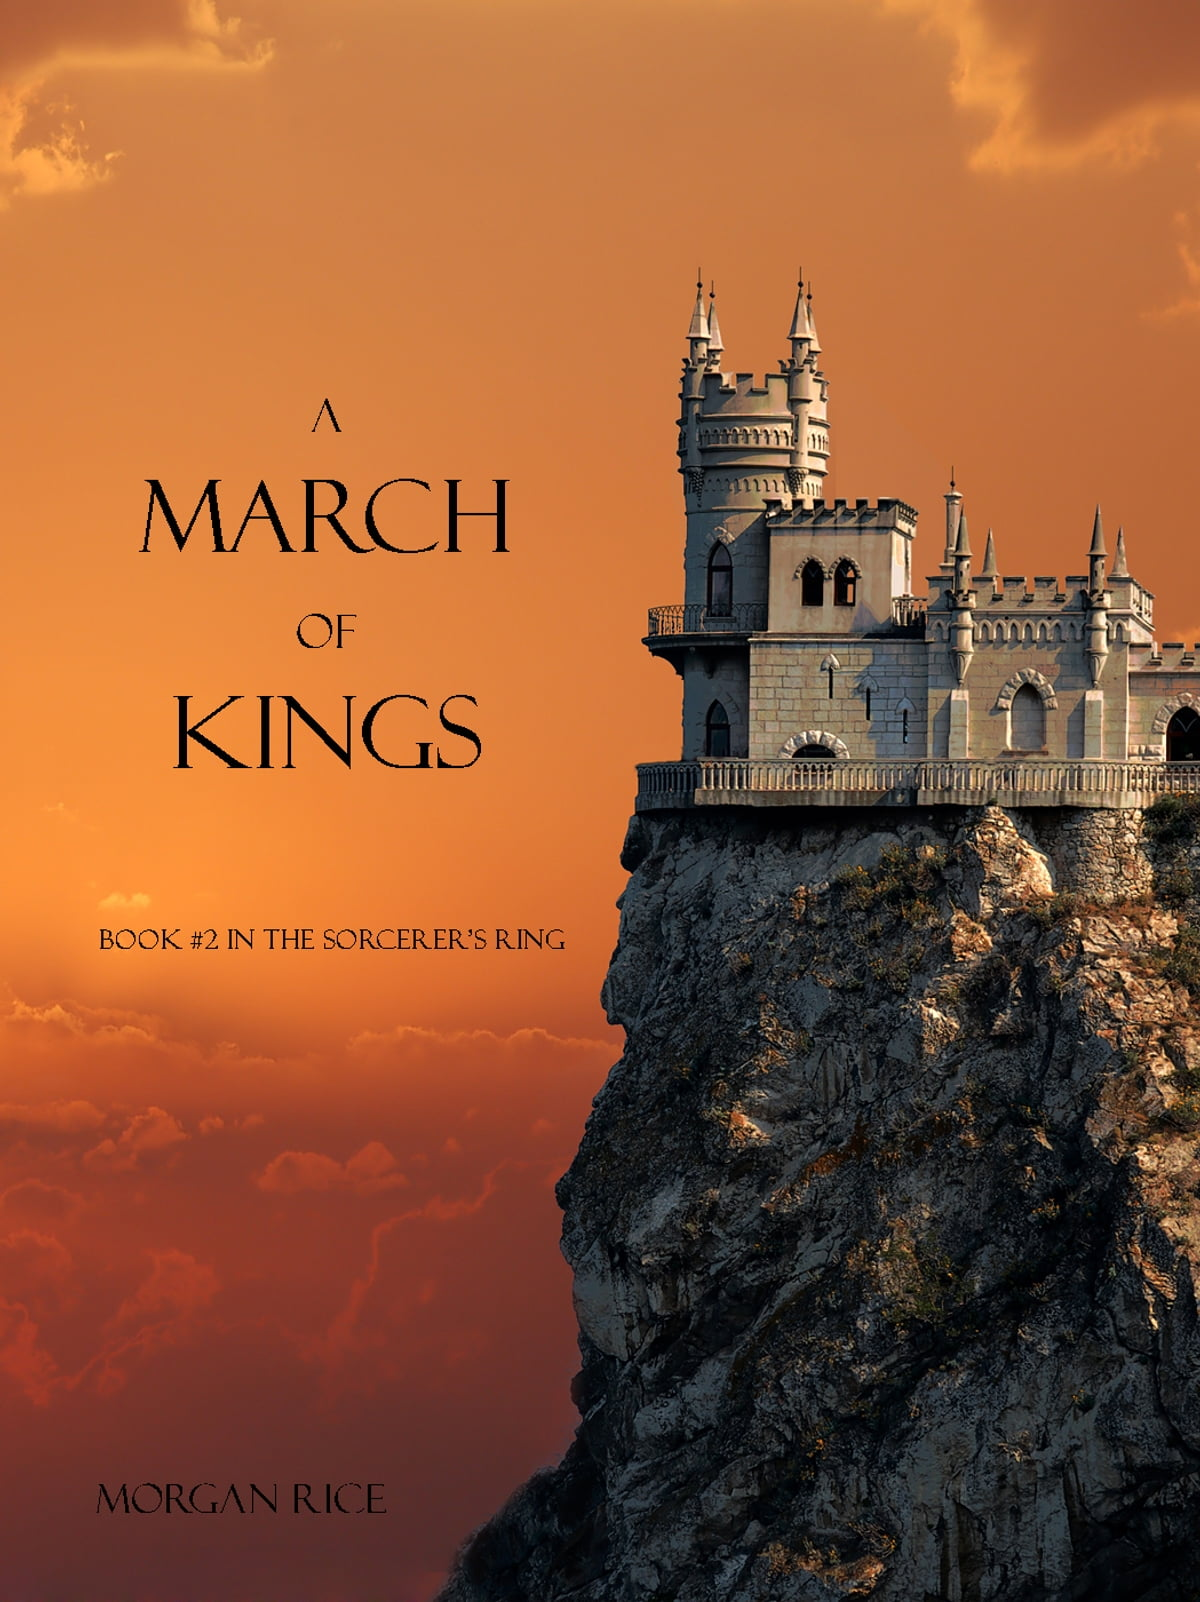 A March Of Kings (book #2 In The Sorcerer's Ring) Ebook By Morgan